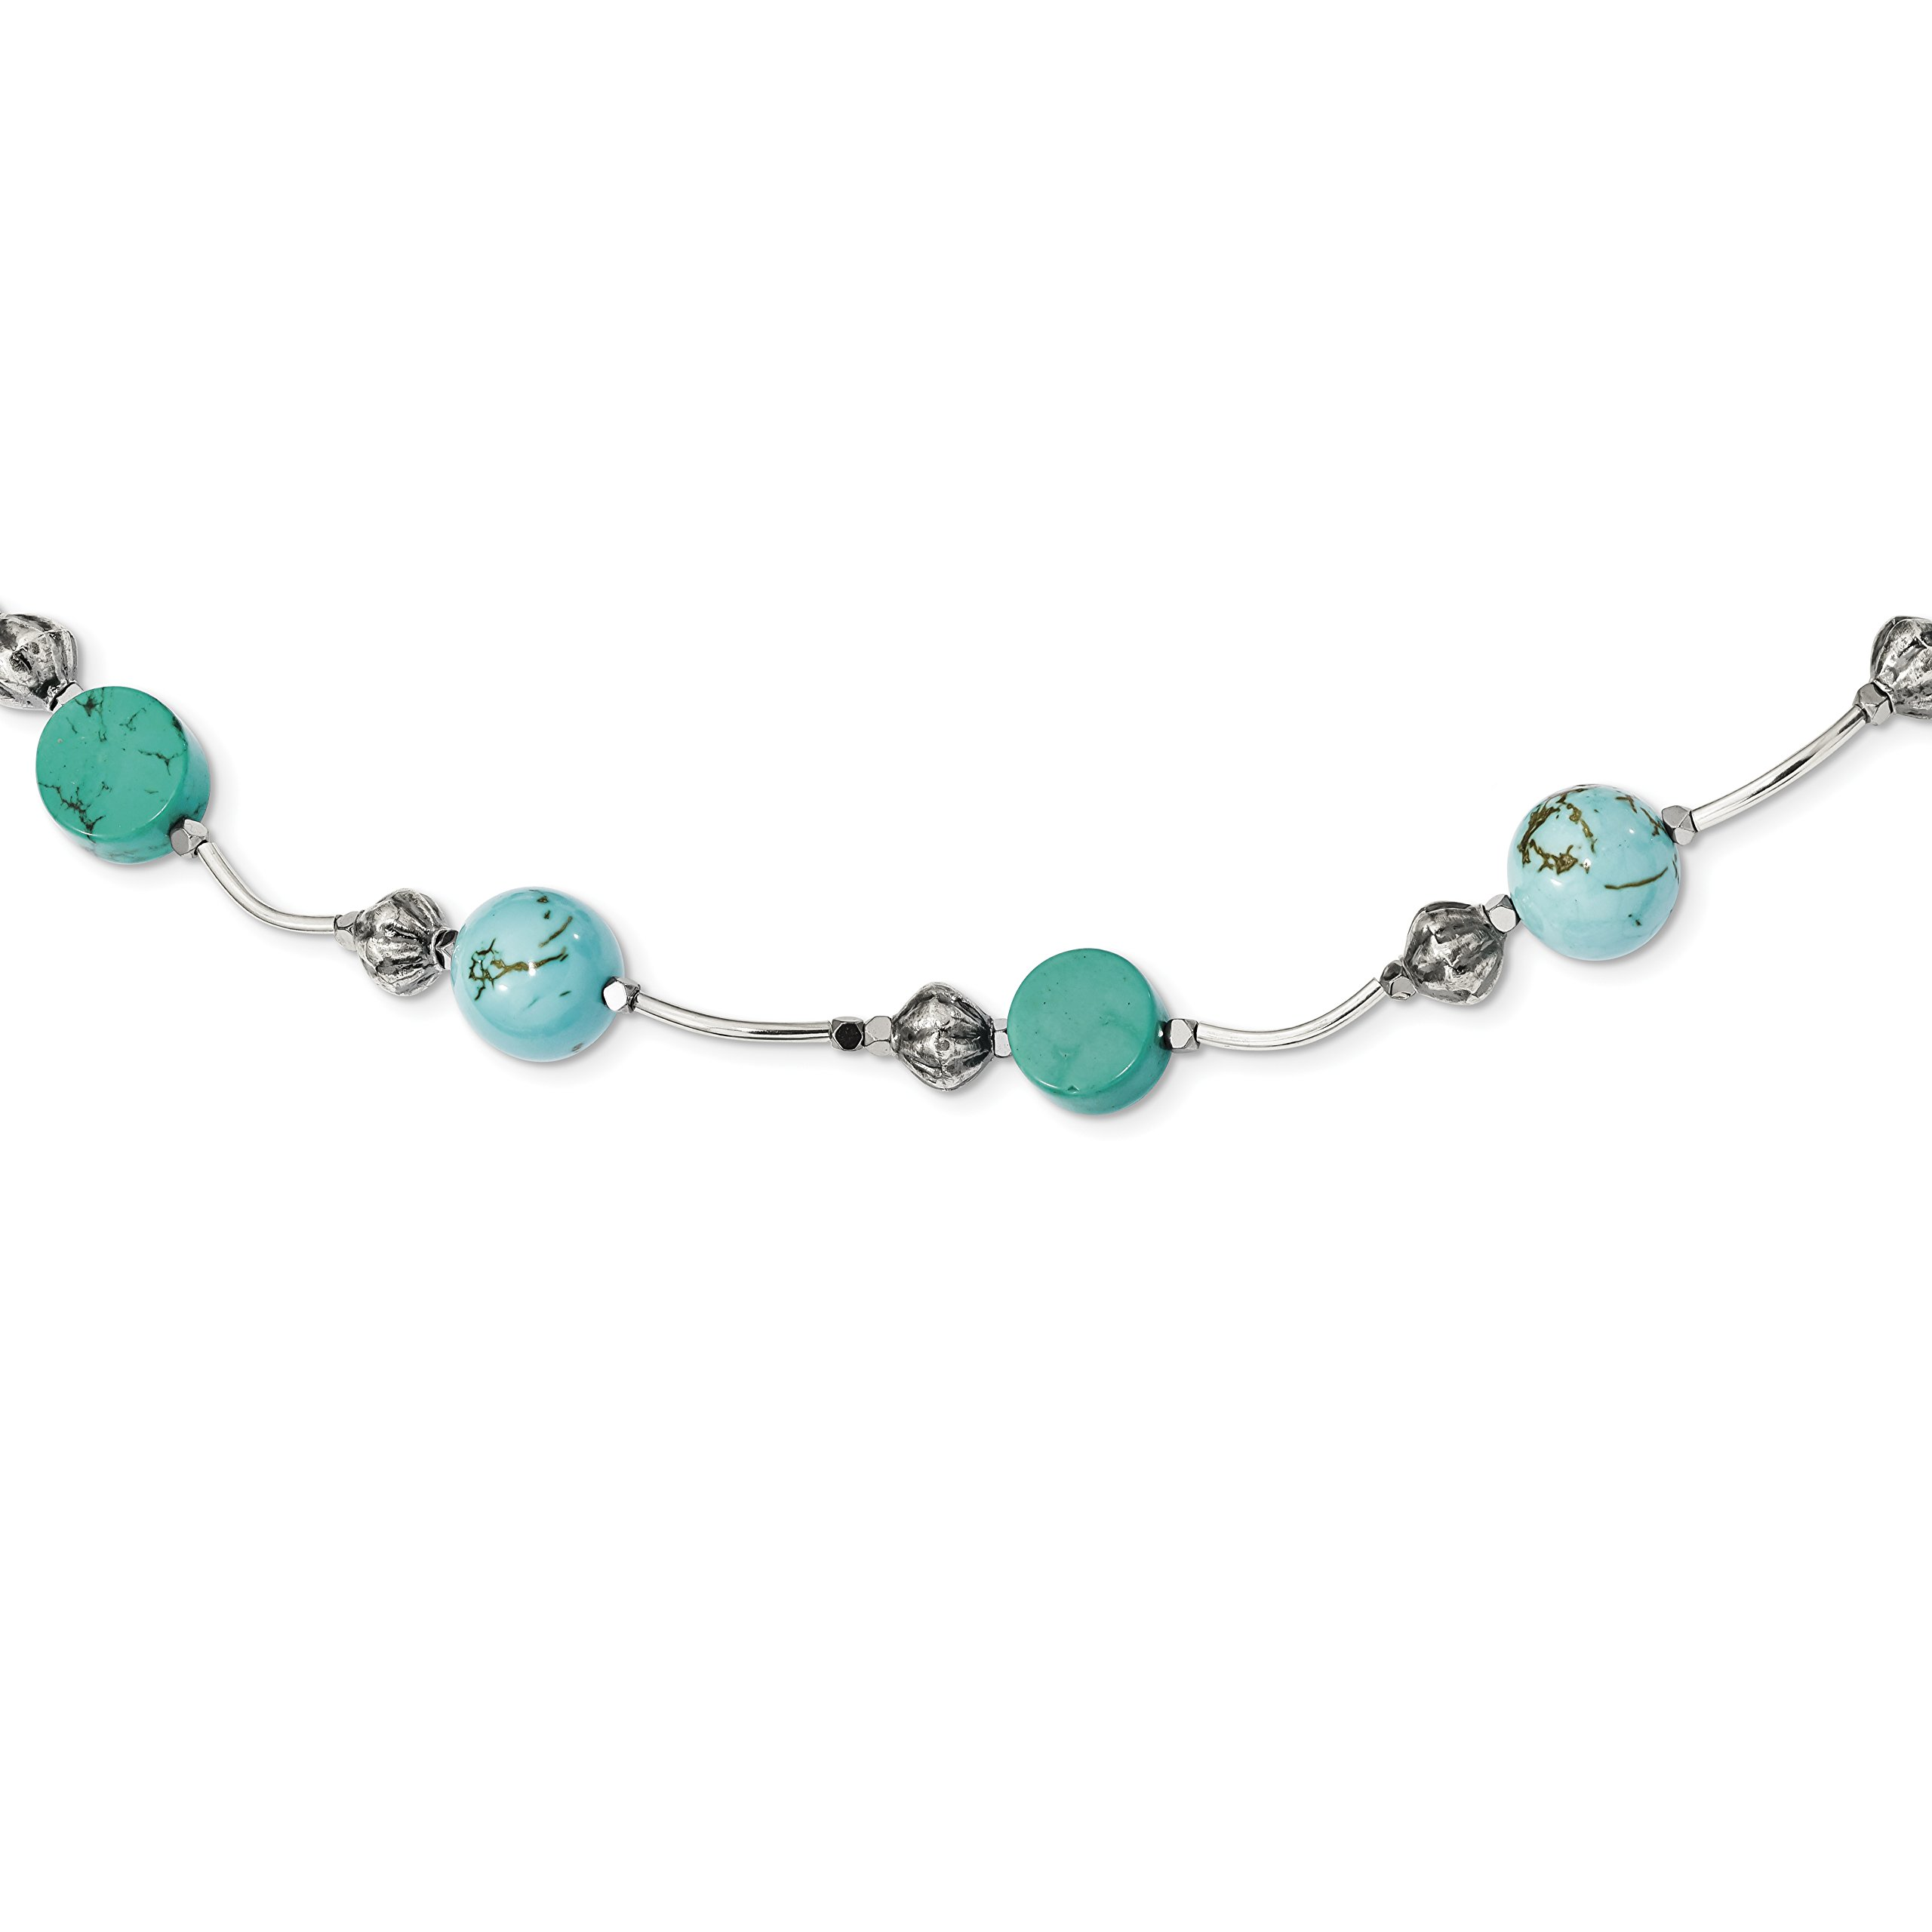 ICE CARATS 925 Sterling Silver Hematite/recon. Blue Turquoise Magnesite 2 Inch Extension Chain Necklace Natural Stone Fine Jewelry Gift Set For Women Heart by ICE CARATS (Image #1)